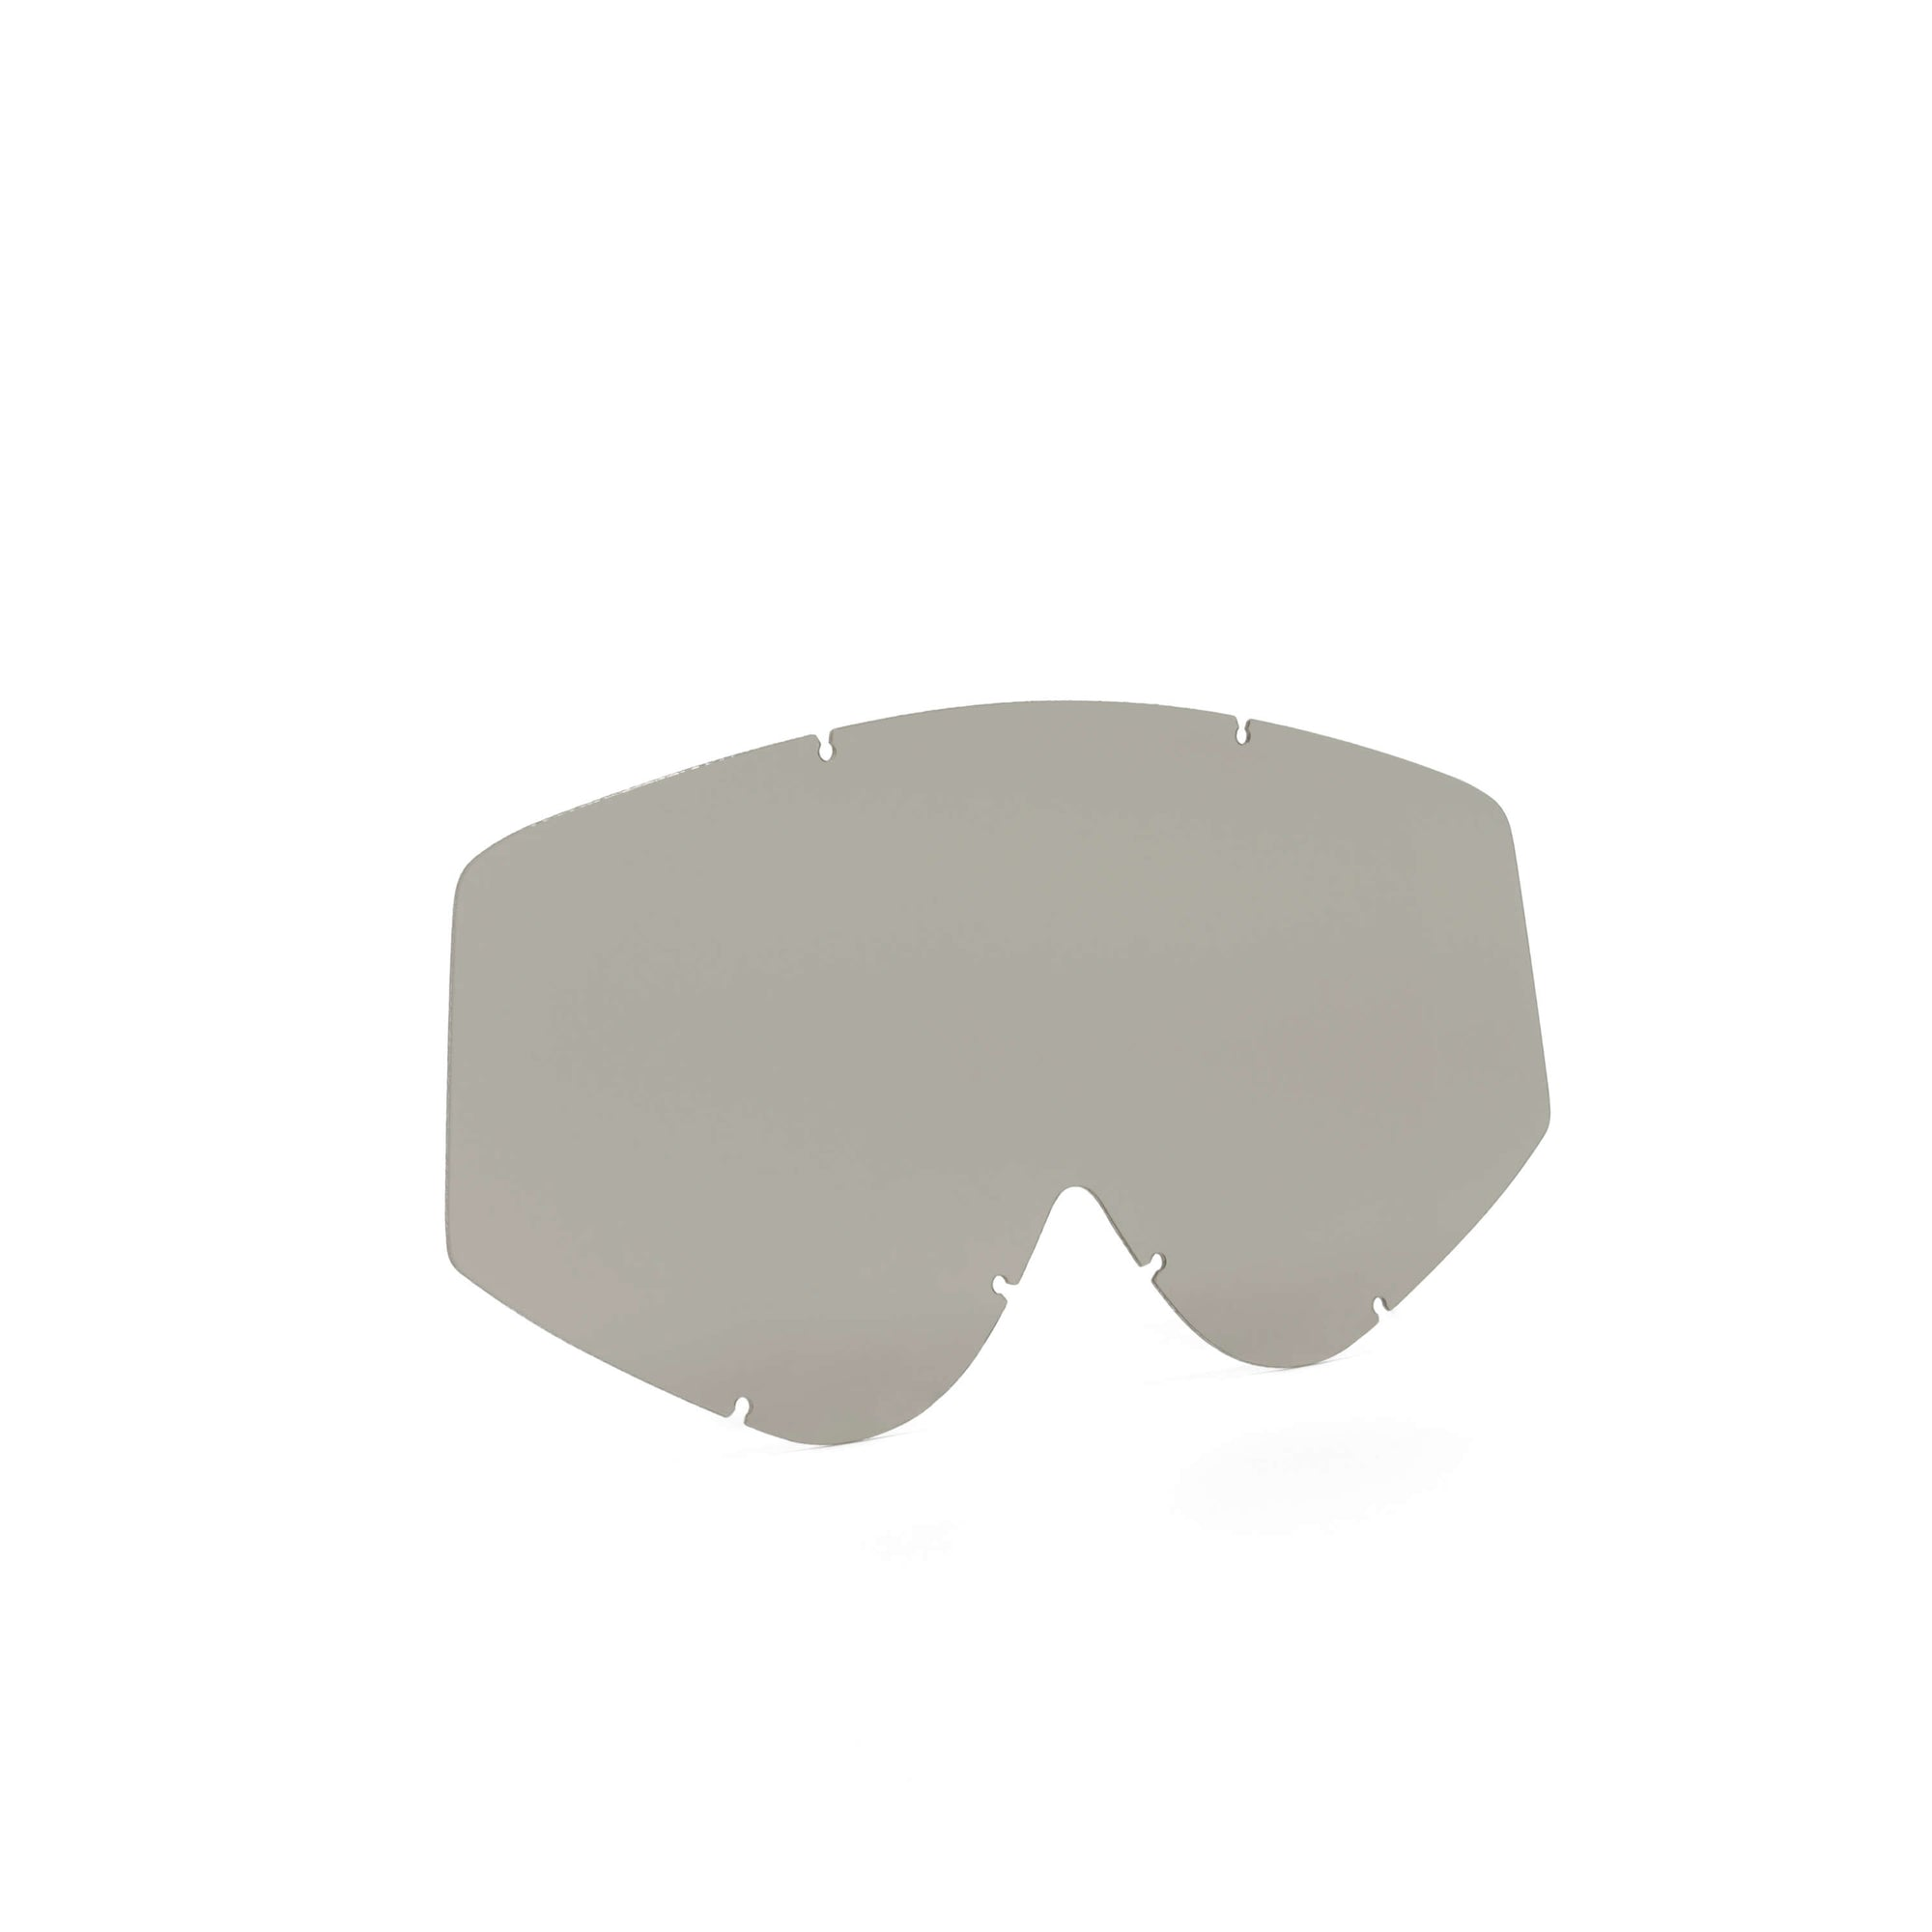 Nastify/Soaza Mtb Single Lens Mtb Grey - Spare Lenses